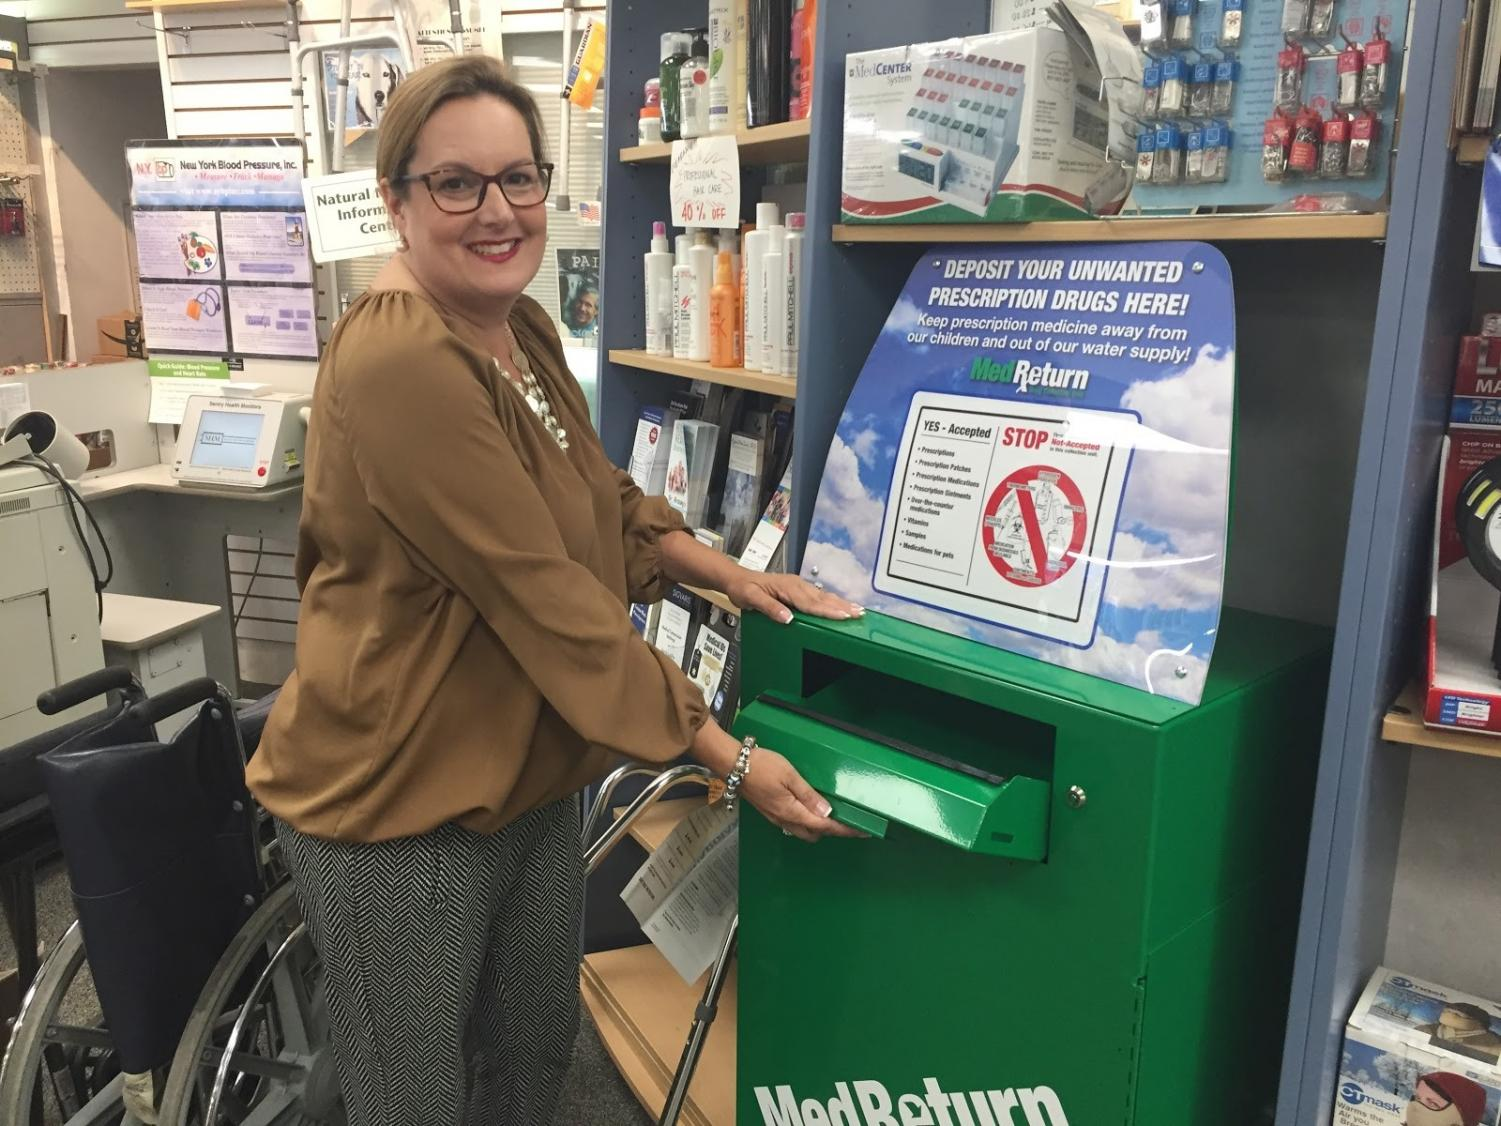 Michelle Torpey opens the new prescription drug recycle box in Rock Ridge Pharmacy. She took initiative to help people dispose of addictive opioid drugs in Glen Rock. She raised money for this box with gofundme.com.